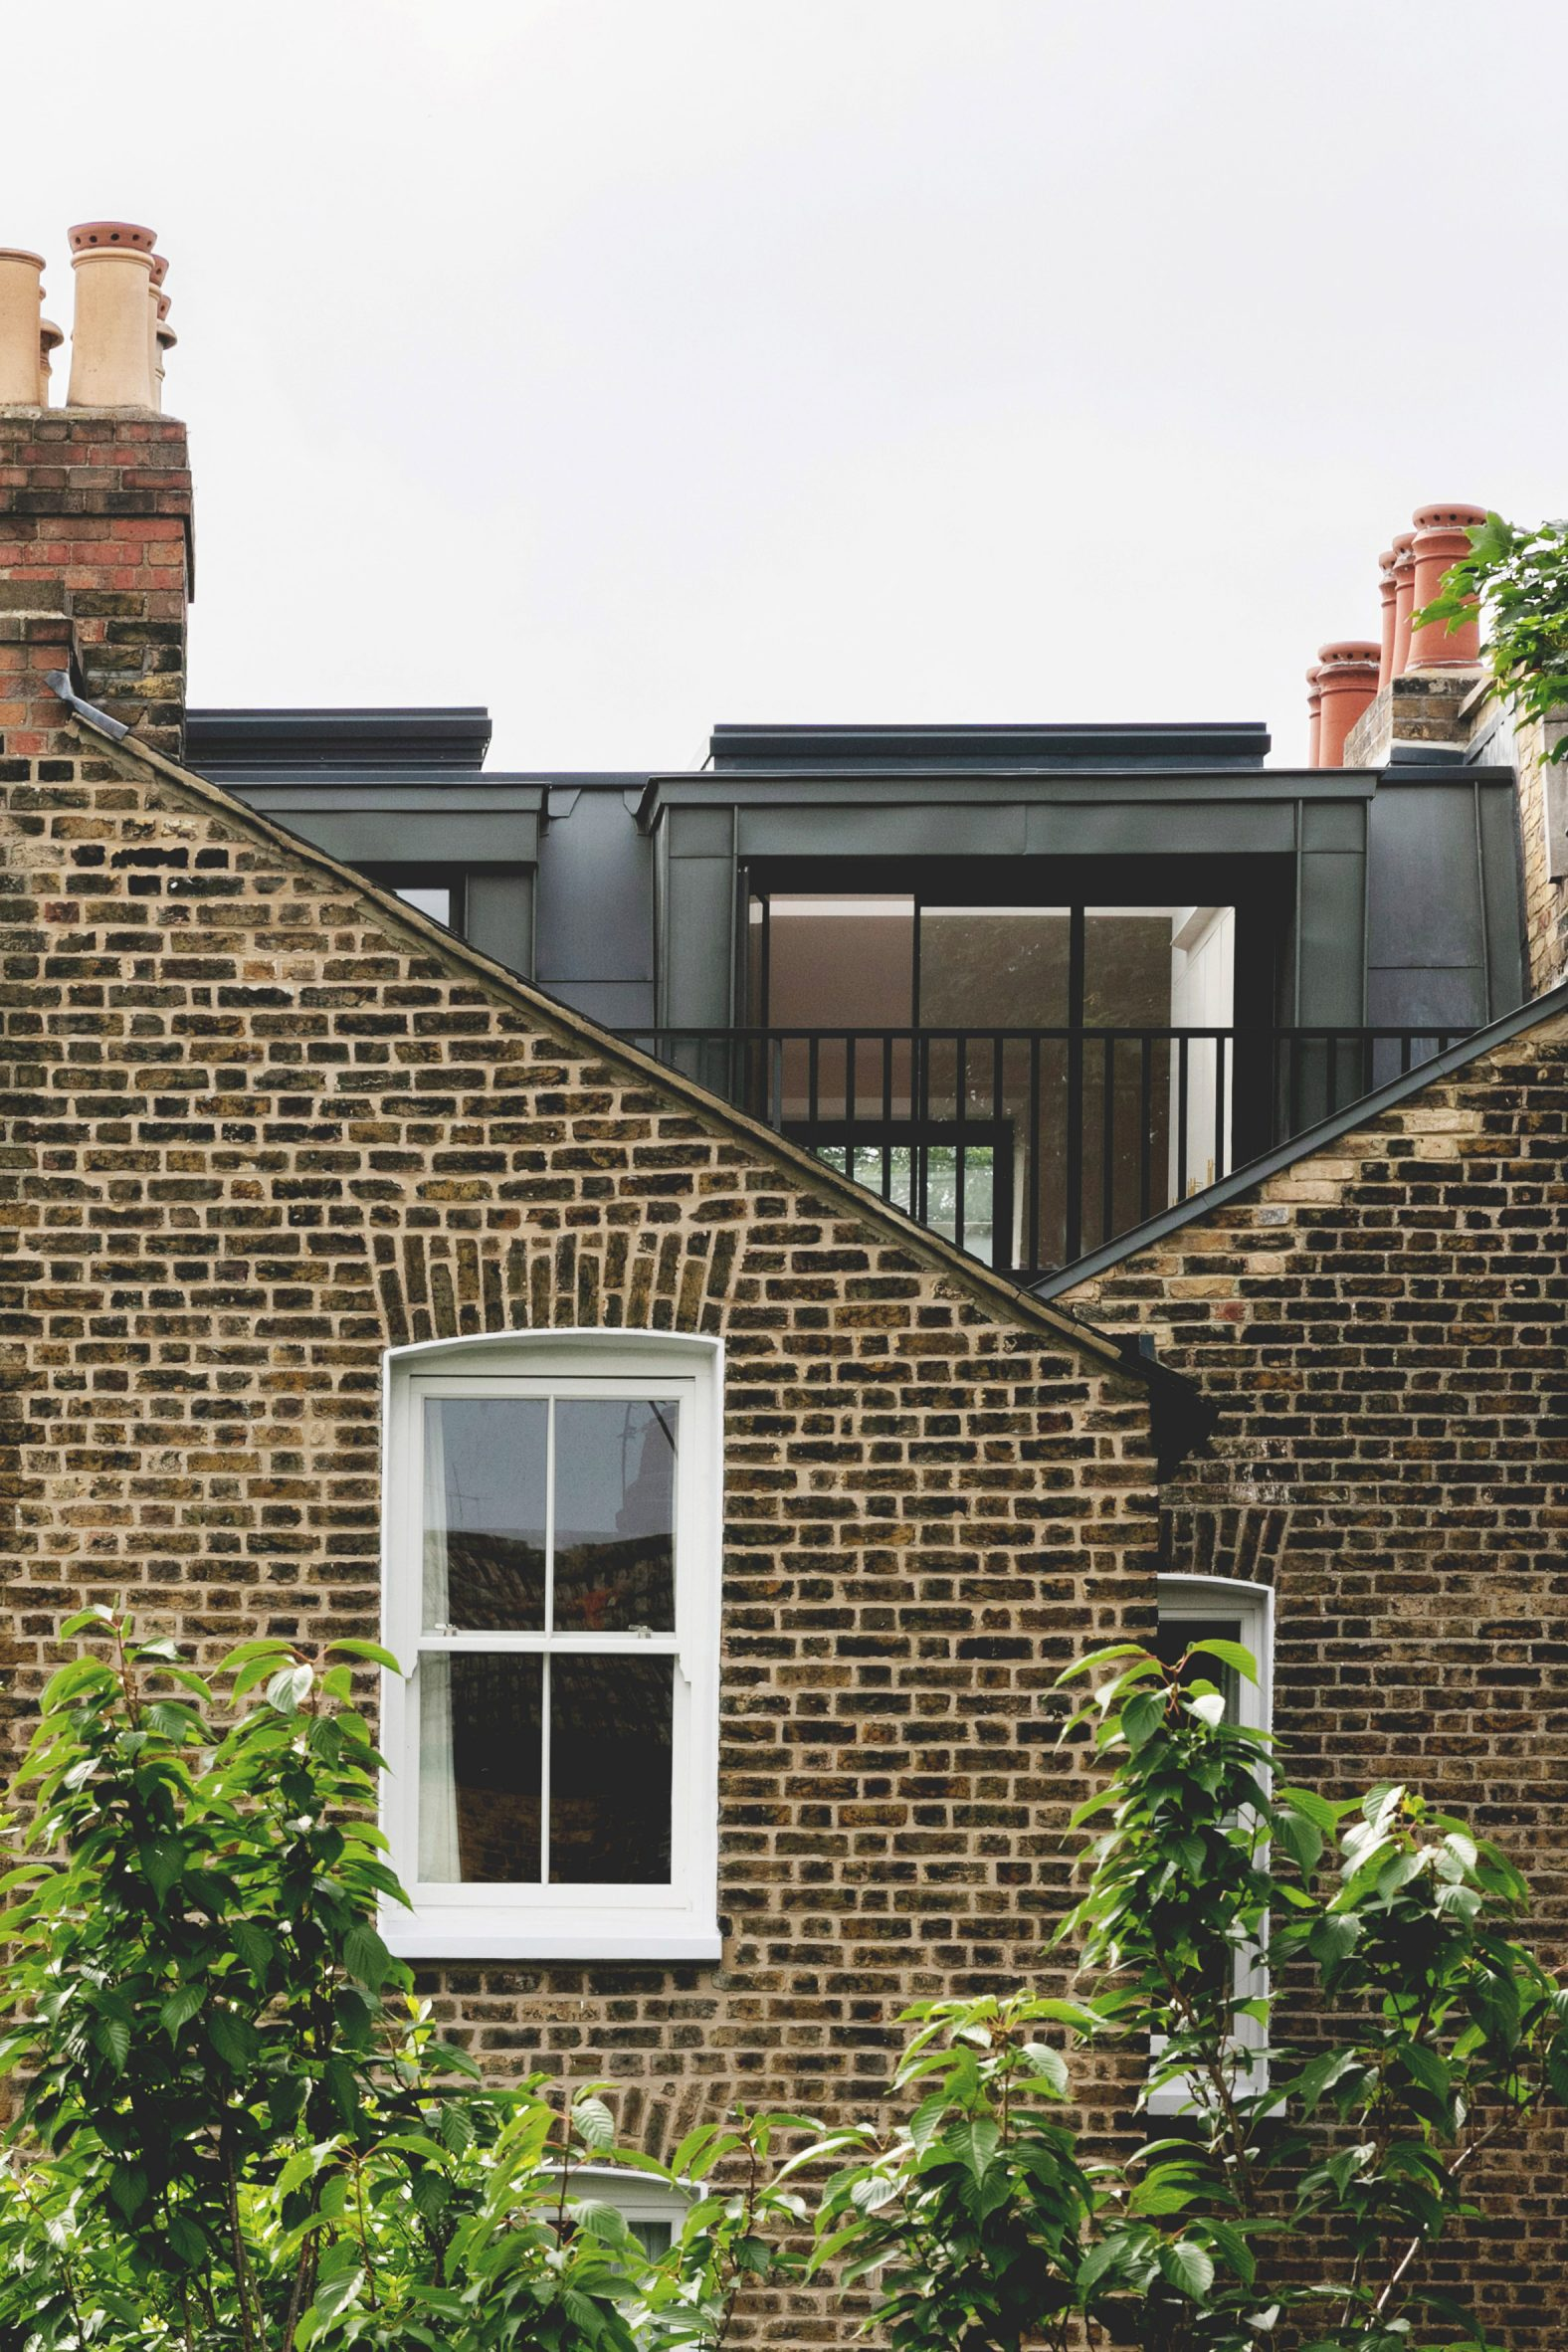 Exterior of Narford Road loft extension by Emil Eve Architects